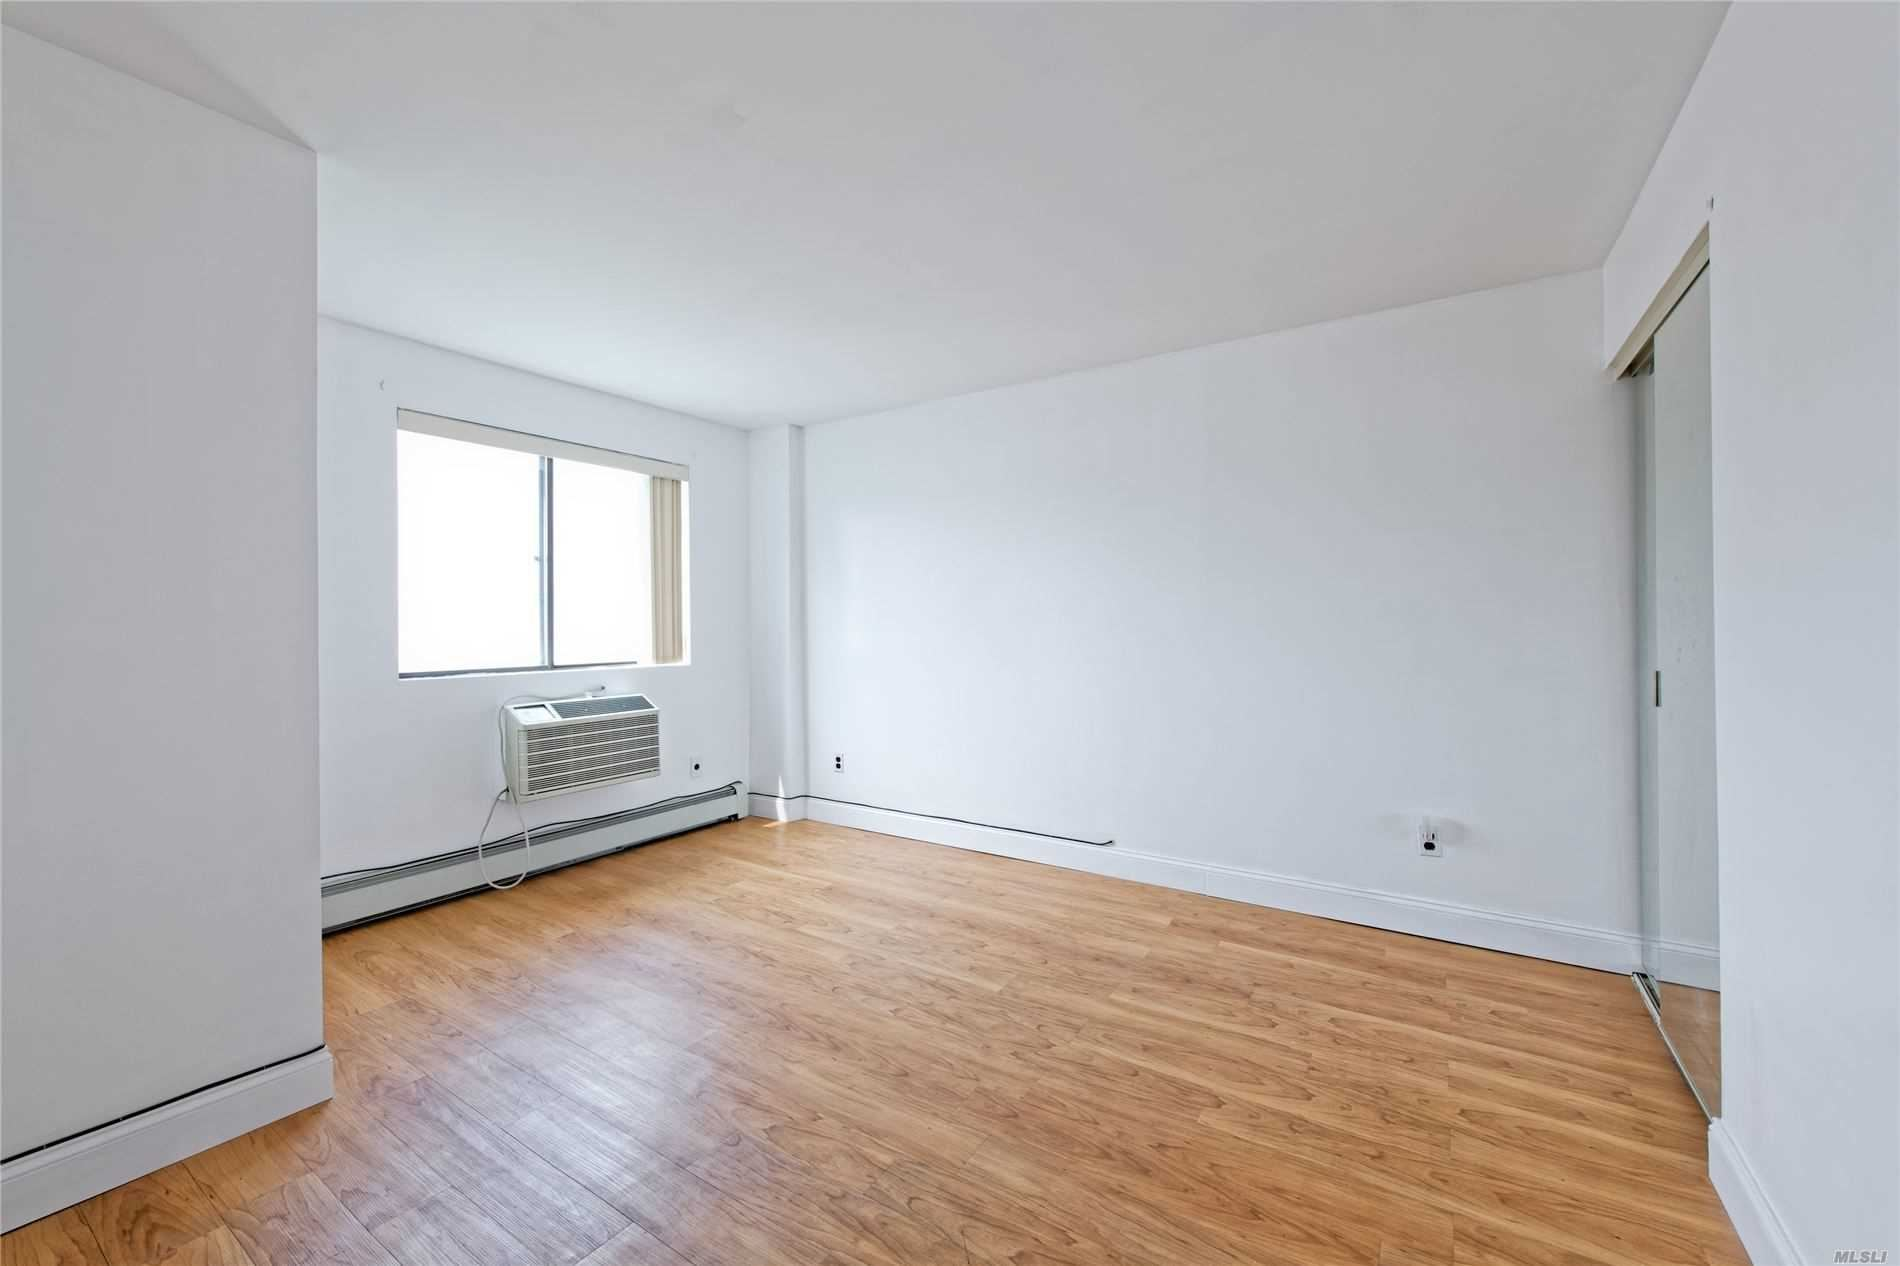 65-22 38th Ave #4A, Woodside, NY 11377 - MLS#: 3227167